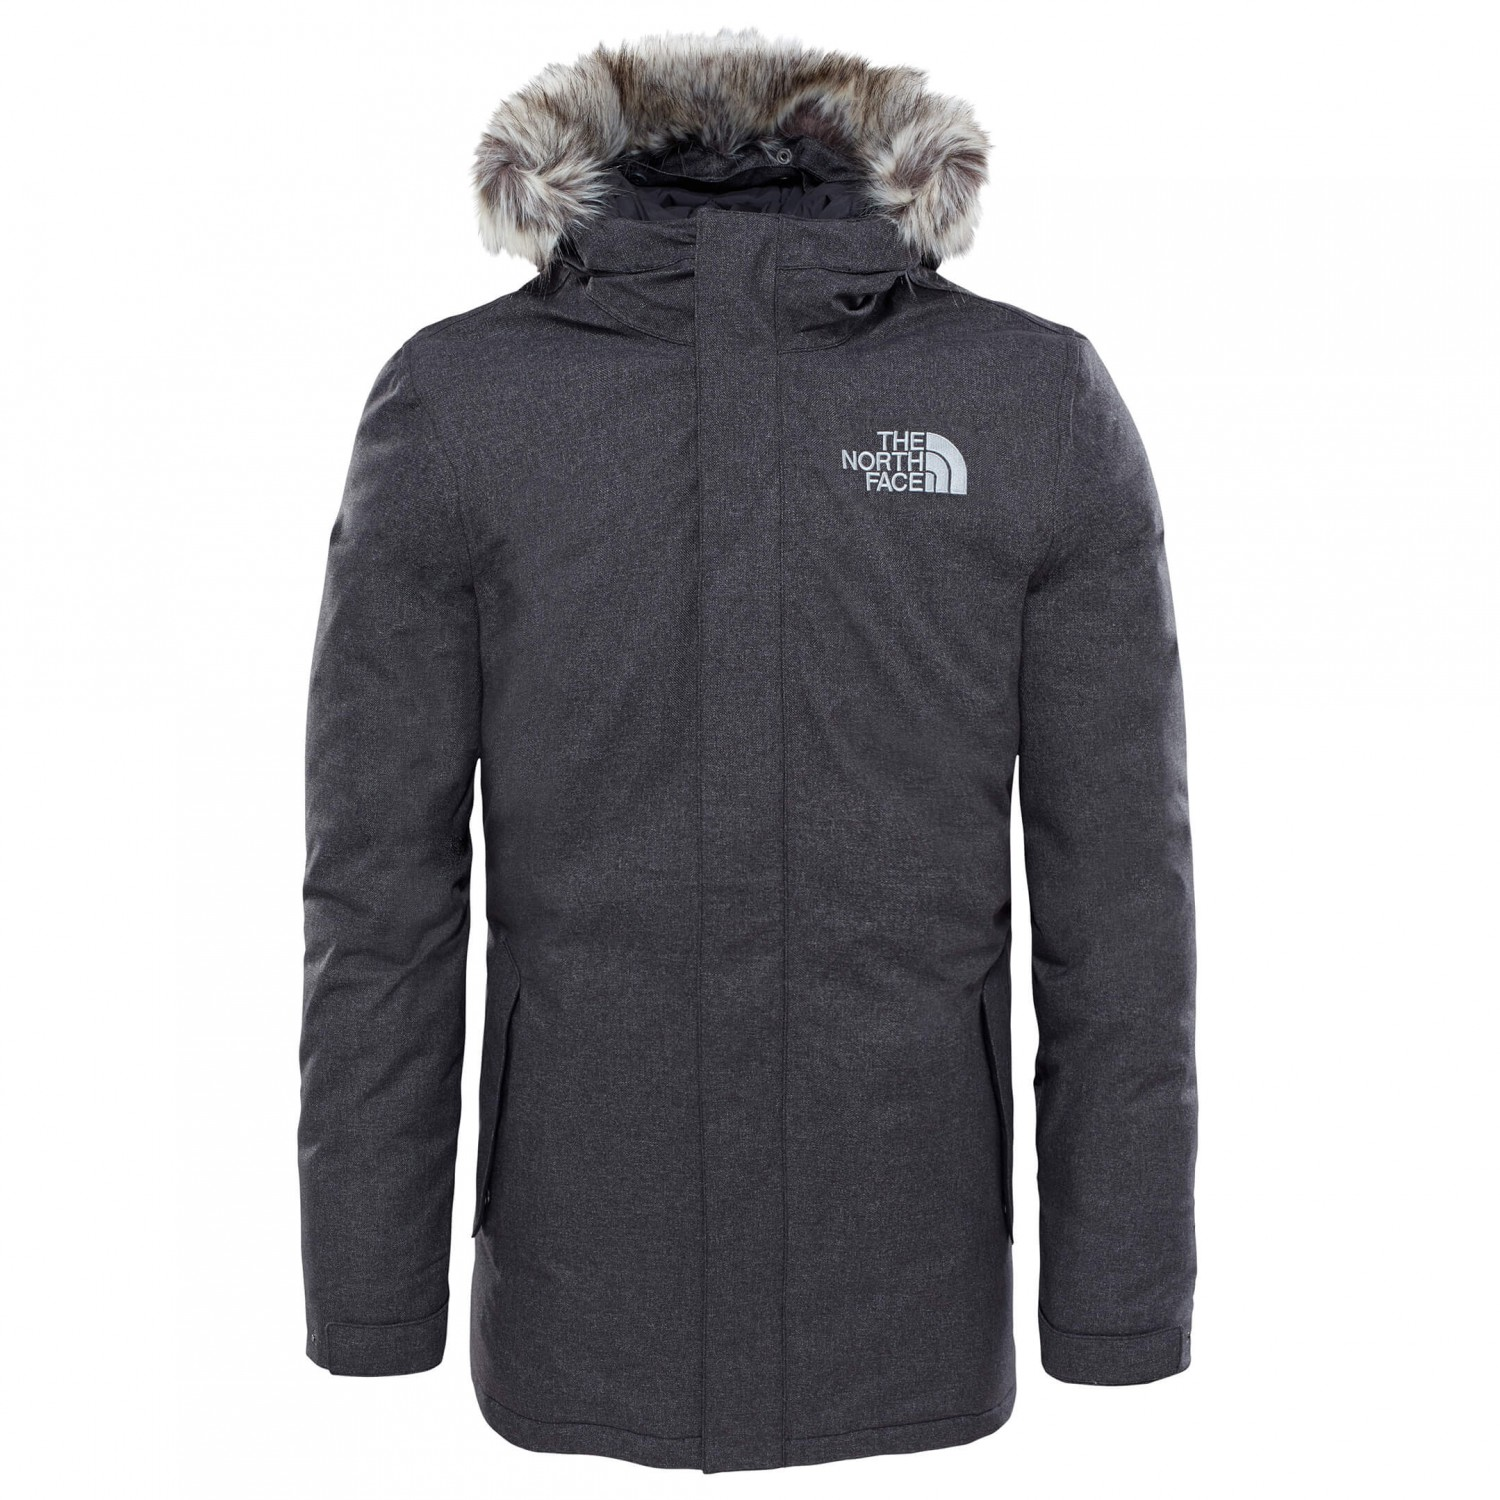 The North Face Zaneck Jacket - Winter jacket Men's | Free